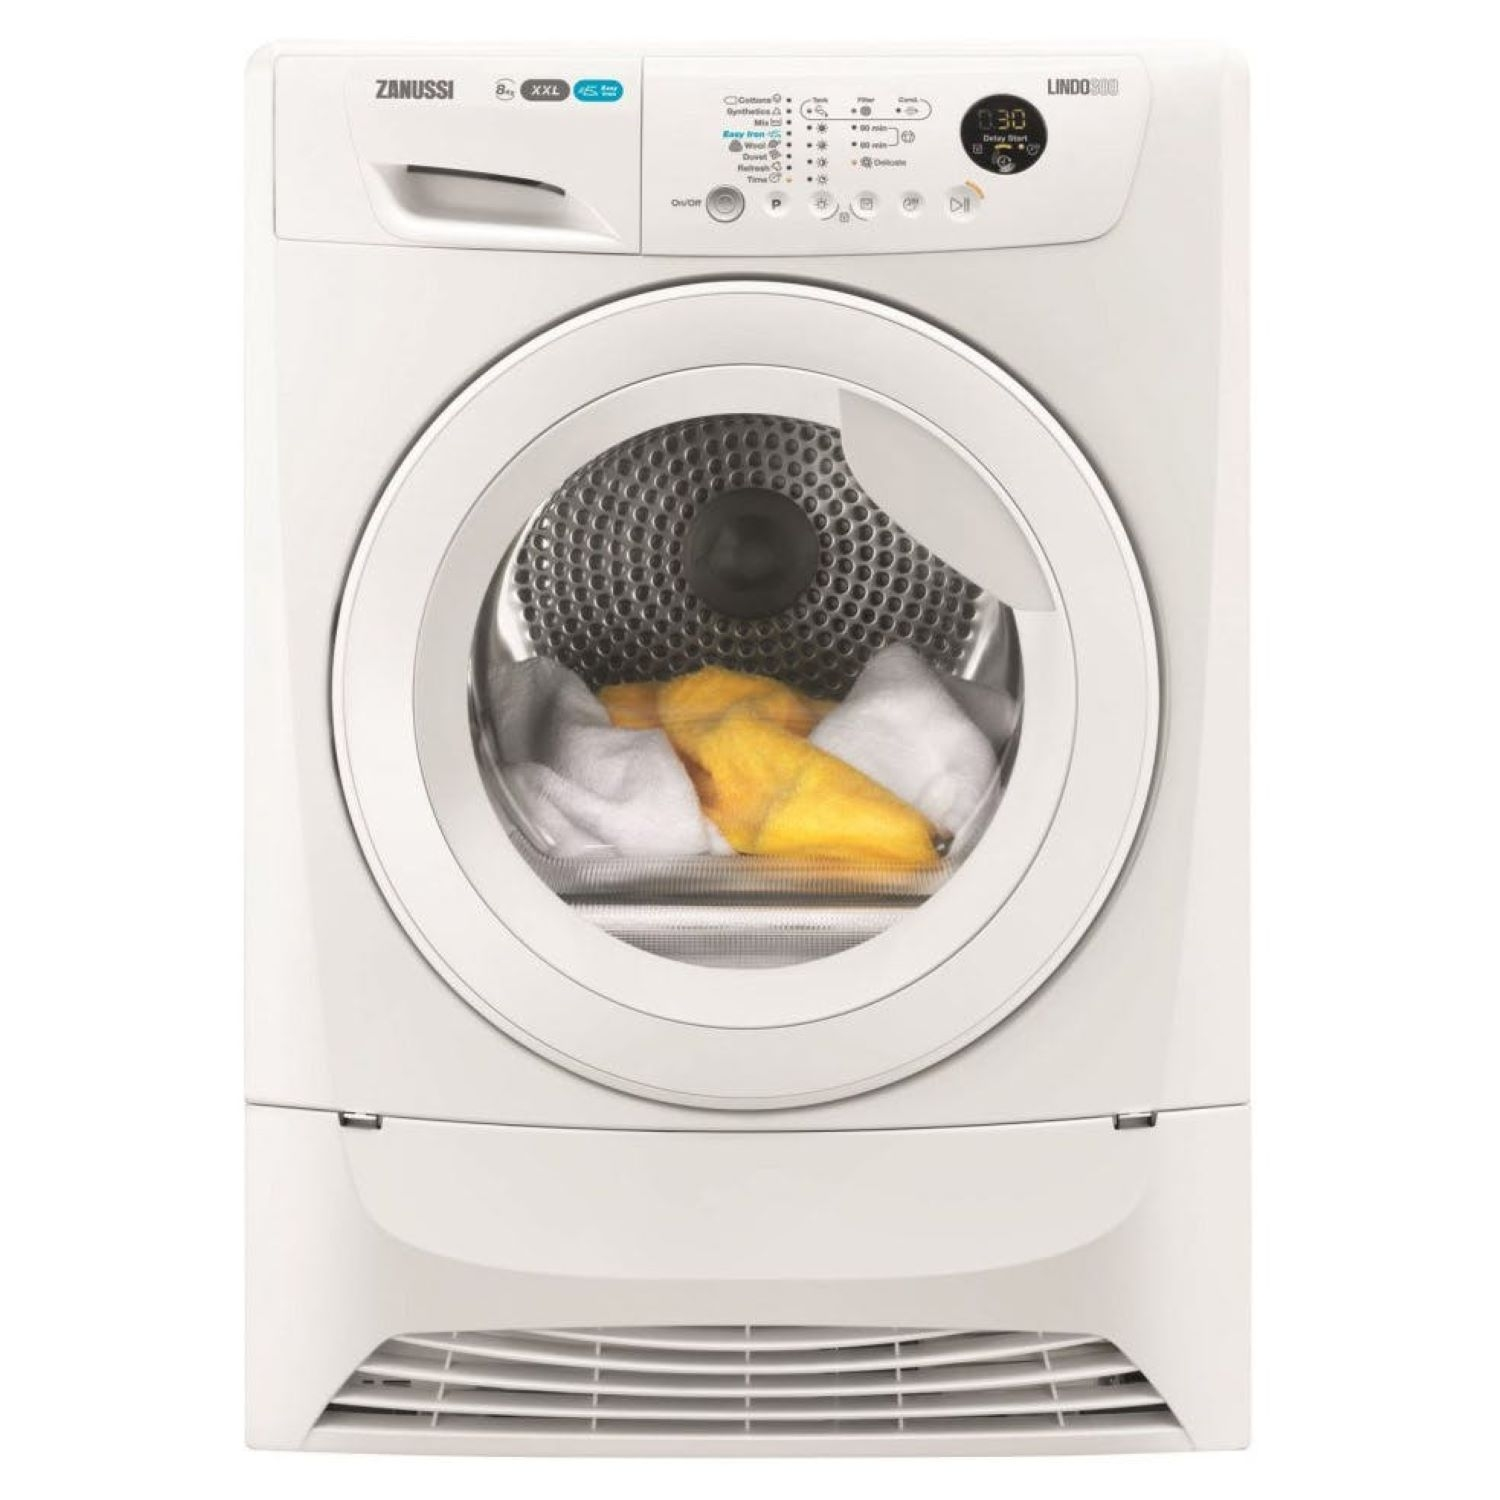 ZANUSSI 8 kg Condenser Tumble Dryer - White - 0